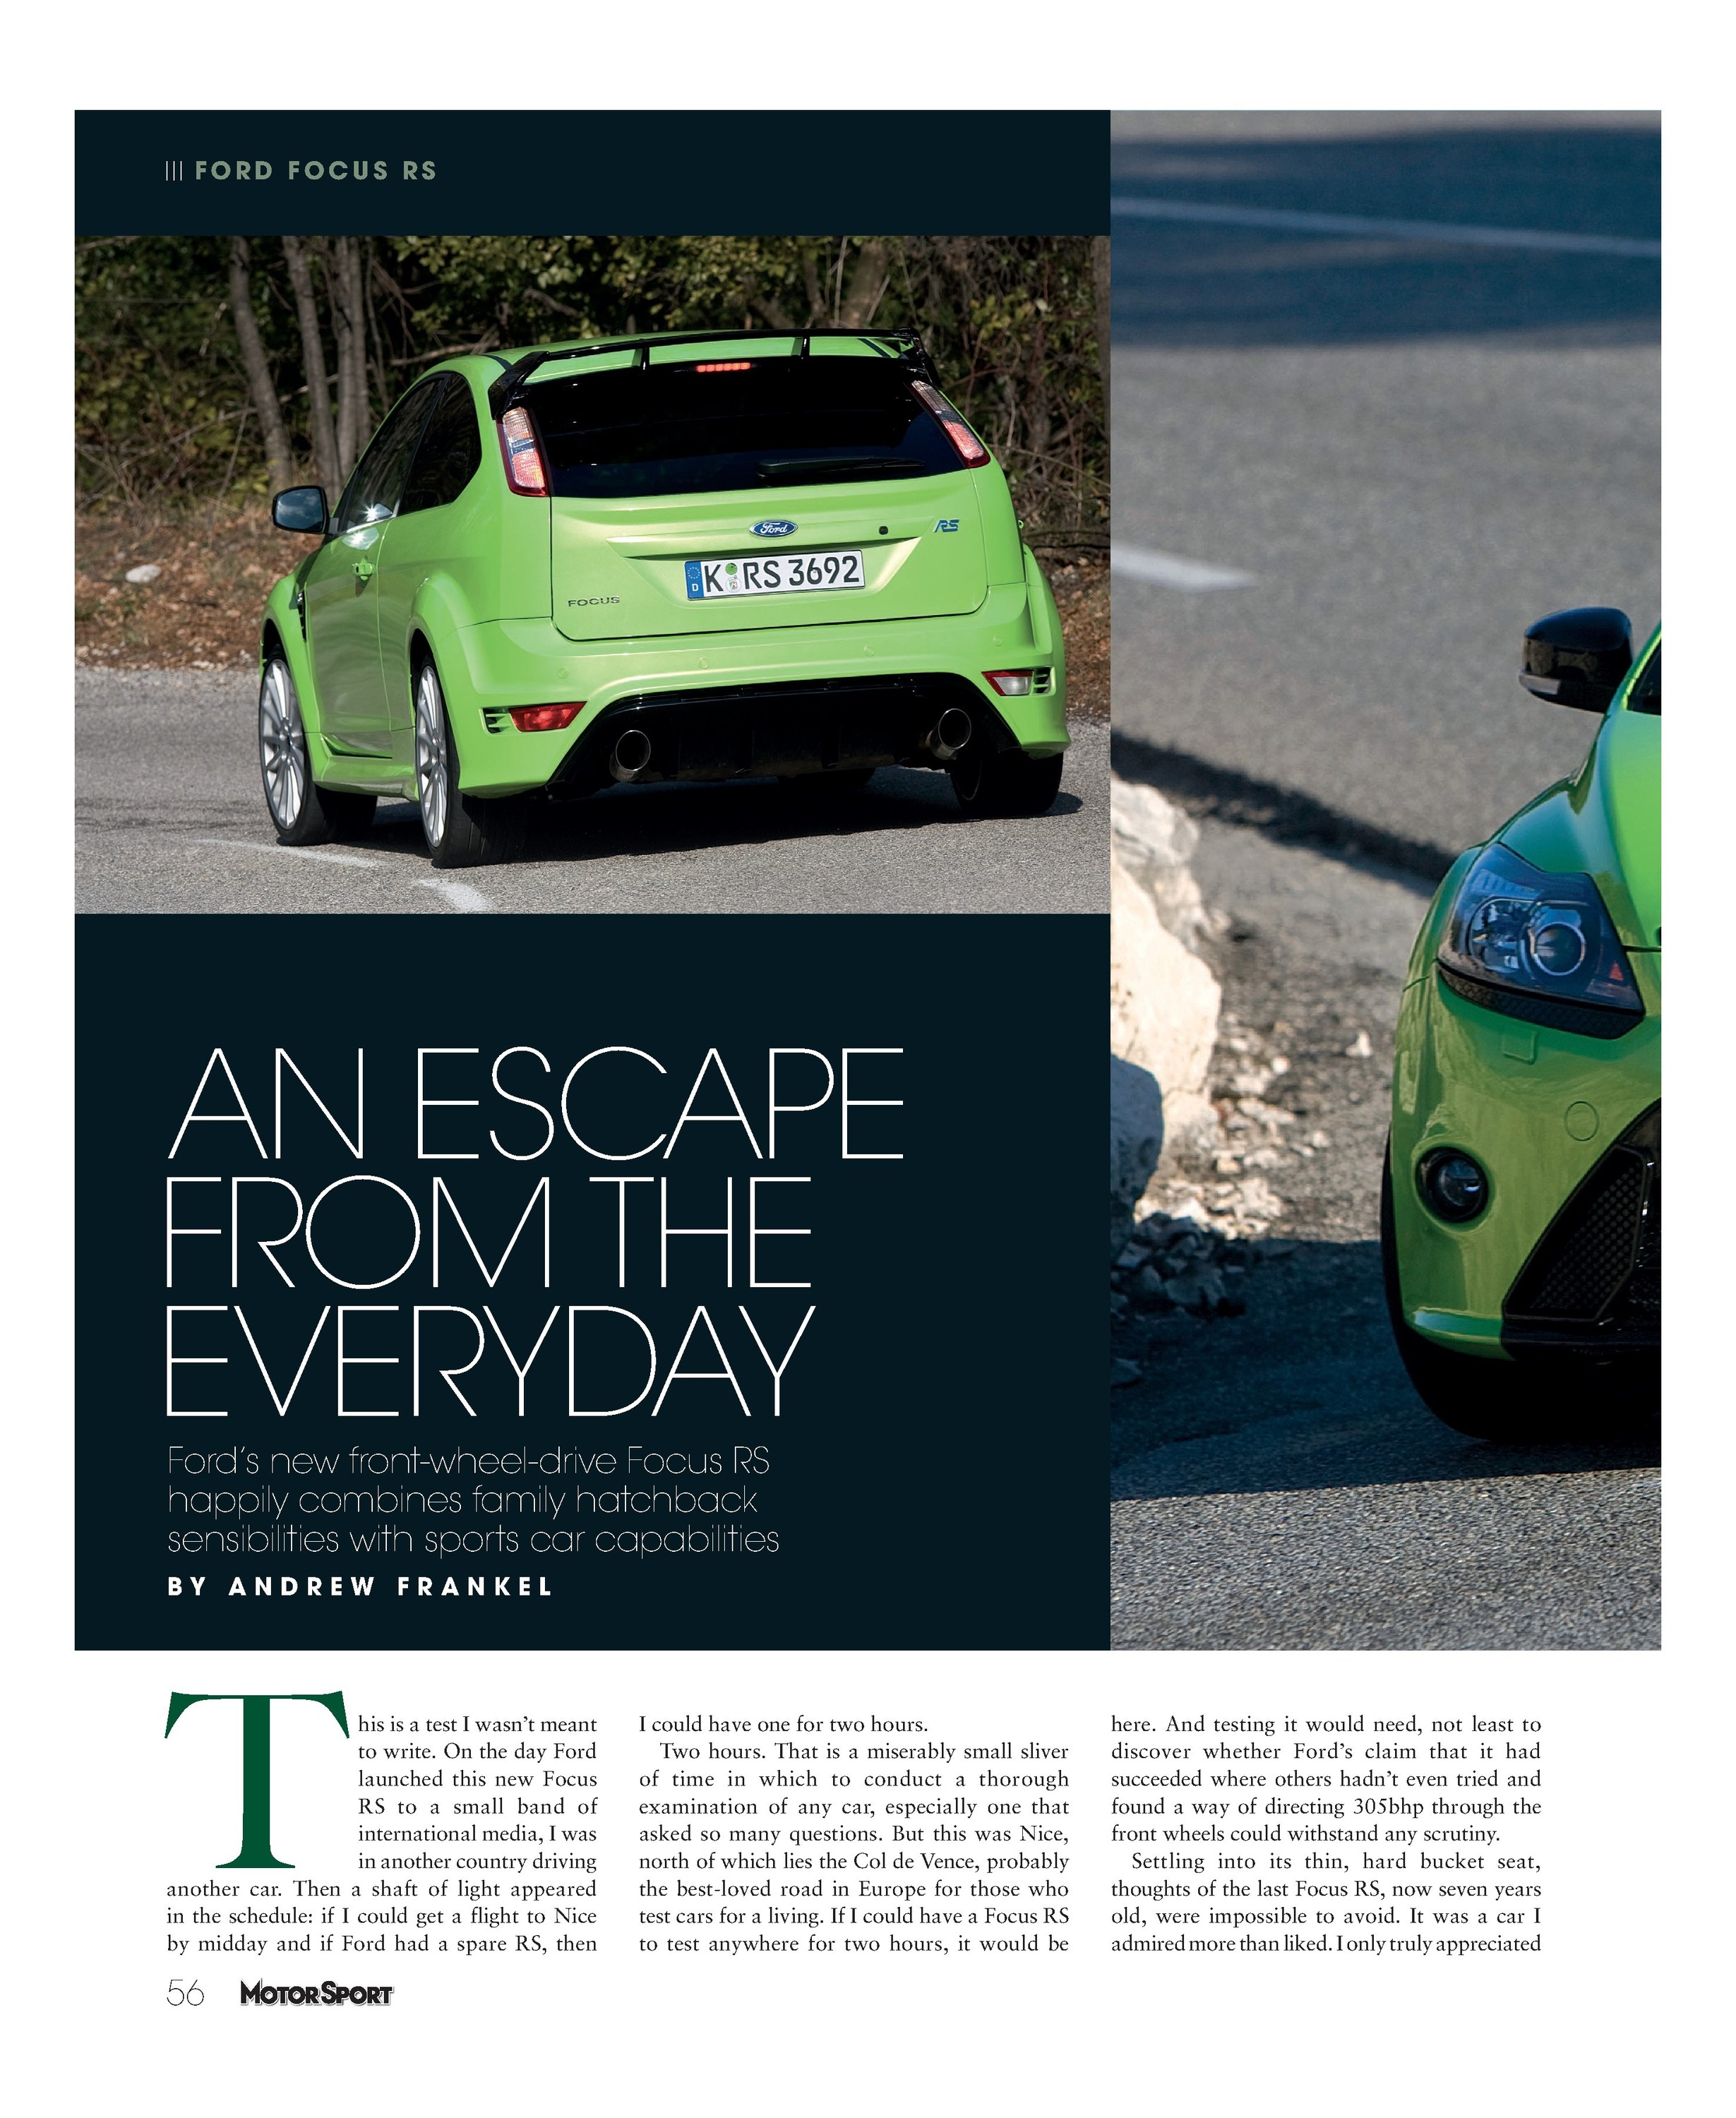 An escape from the everyday | Motor Sport Magazine Archive